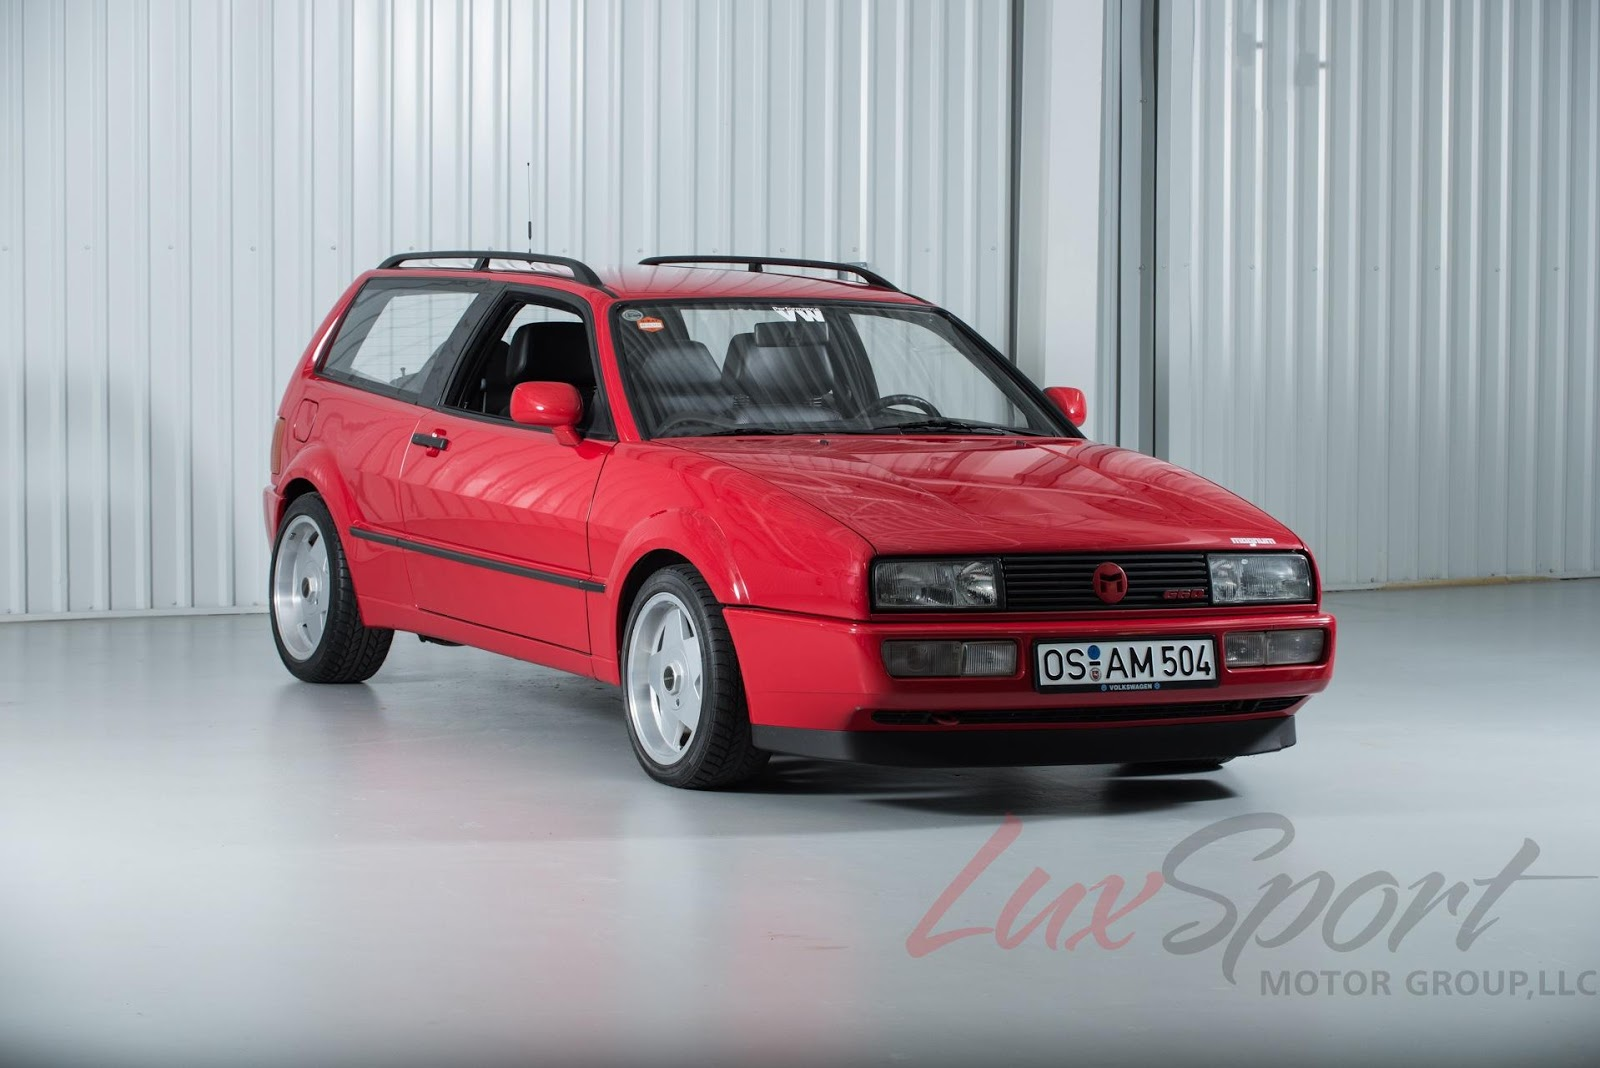 Audi Used For Sale >> Two Unique VW Corrado Magnum Sport Kombi Prototypes For Sale In The USA | Carscoops